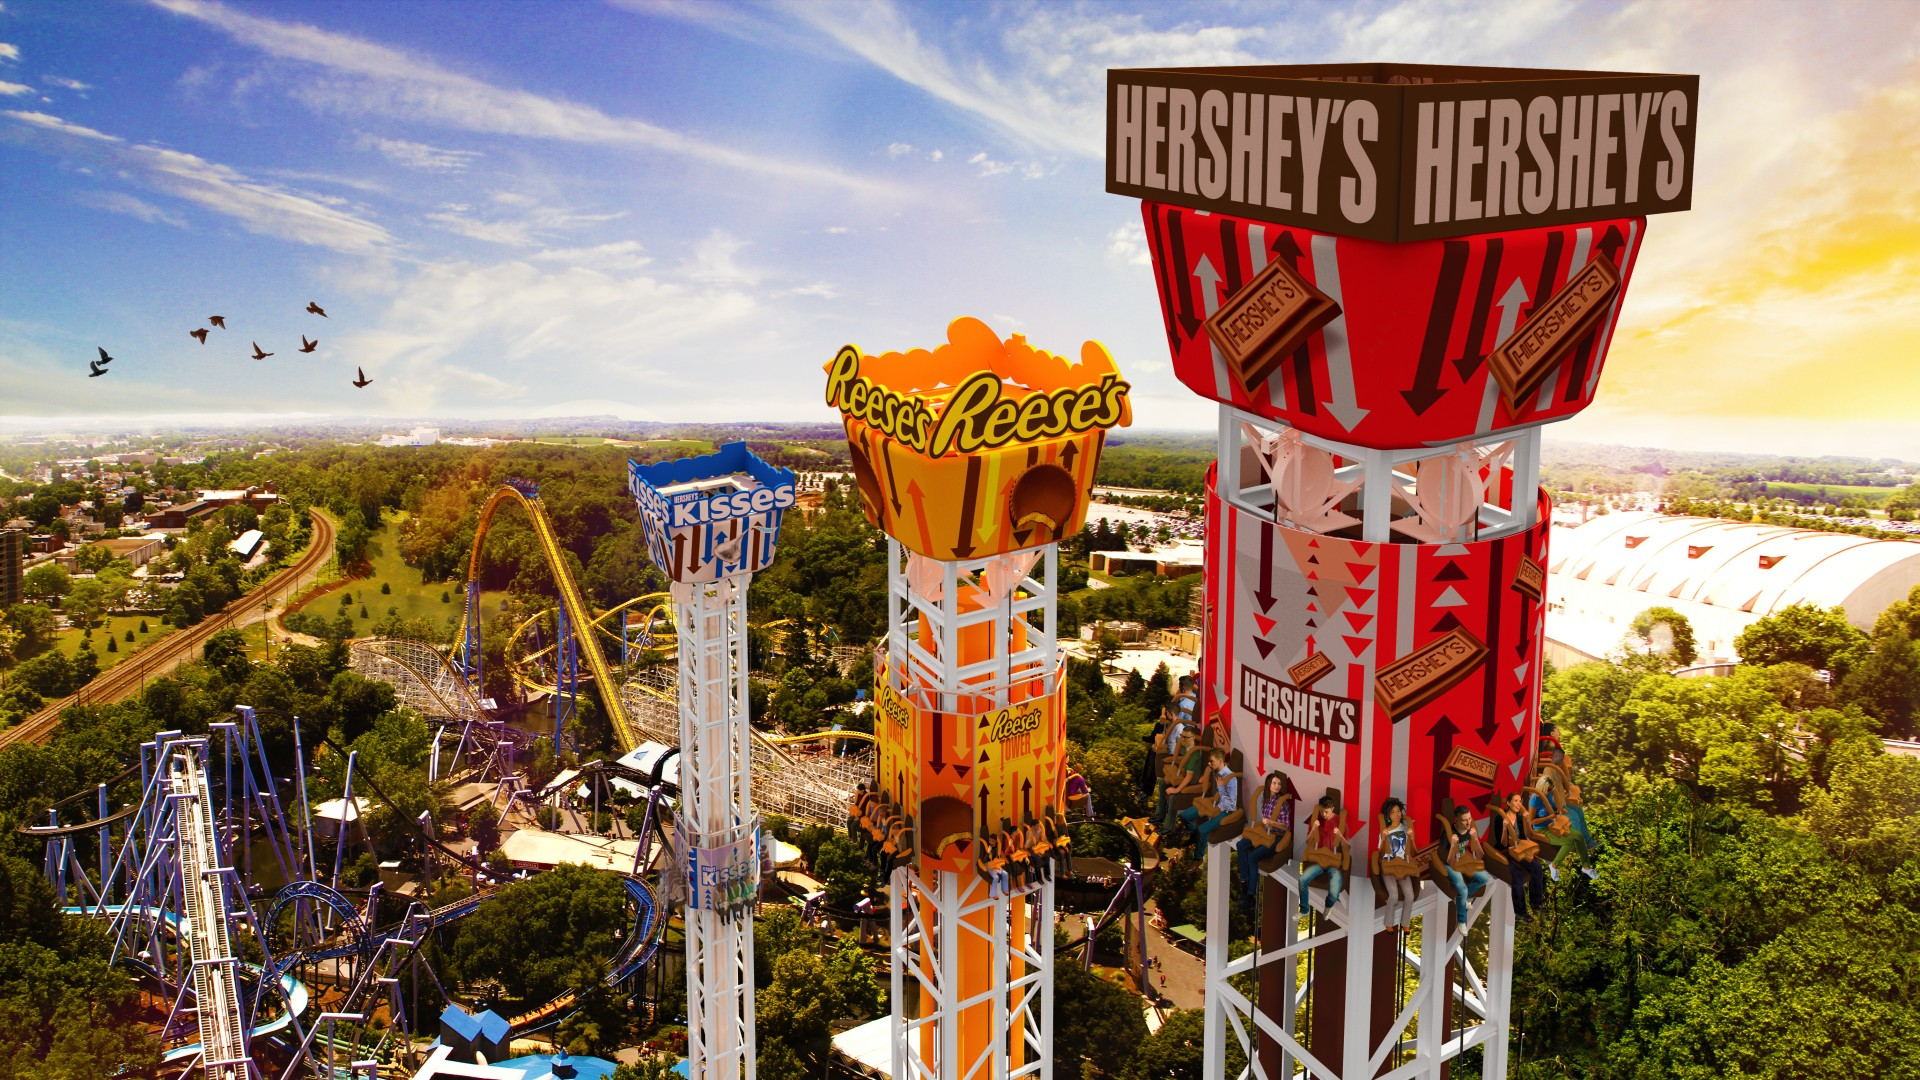 Wallpaper For Phone Fall Hersheypark Announces Hershey Triple Tower Opening In 2017